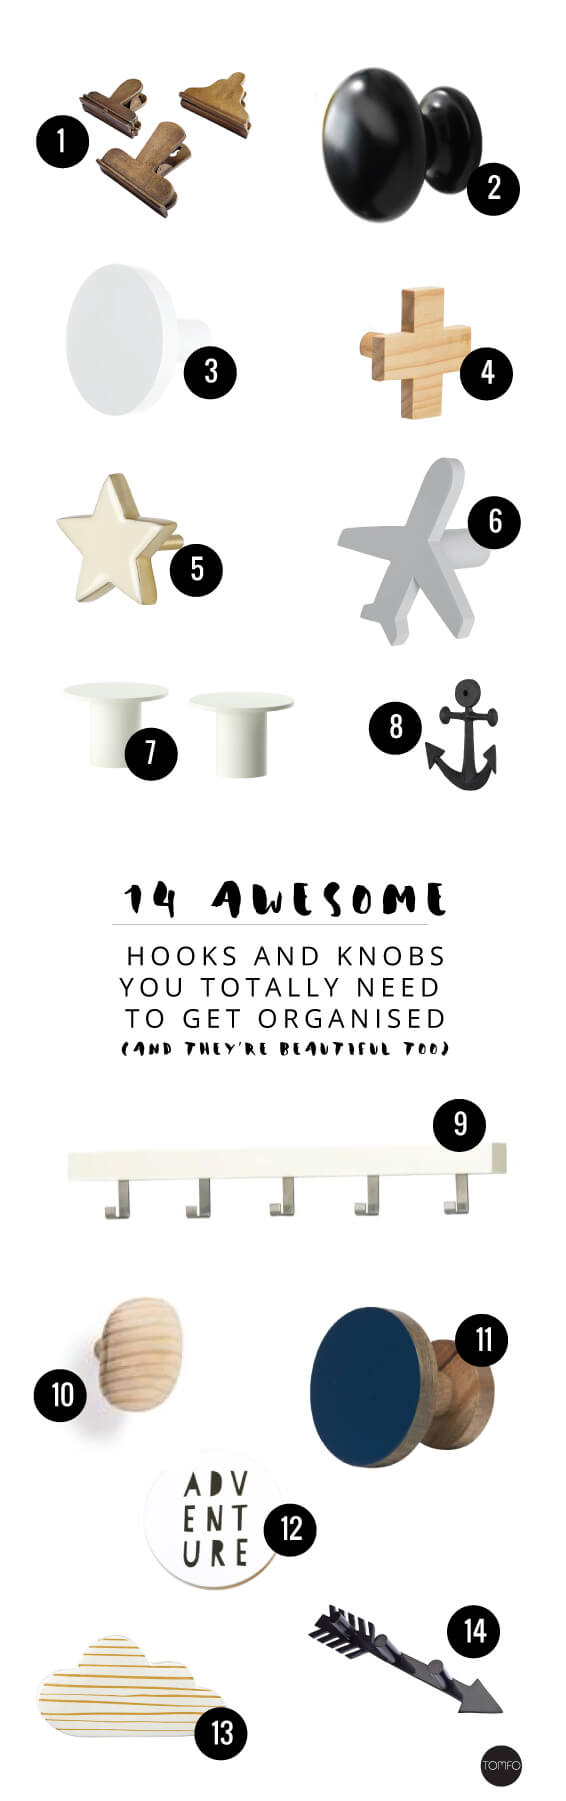 Tomfo-14-totally-awesome-hooks-and-knobs